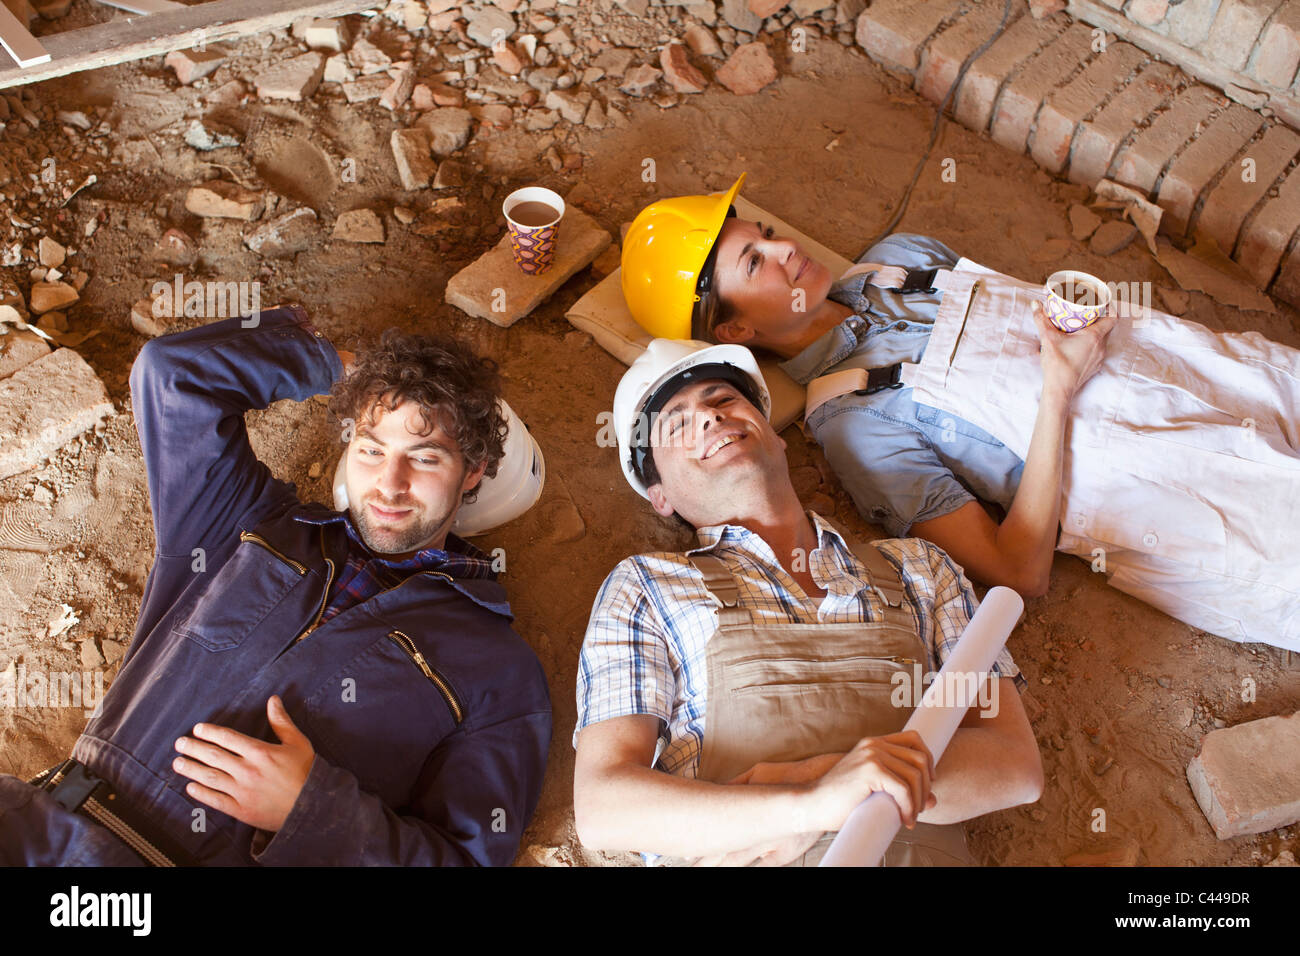 Three construction workers taking a coffee break - Stock Image